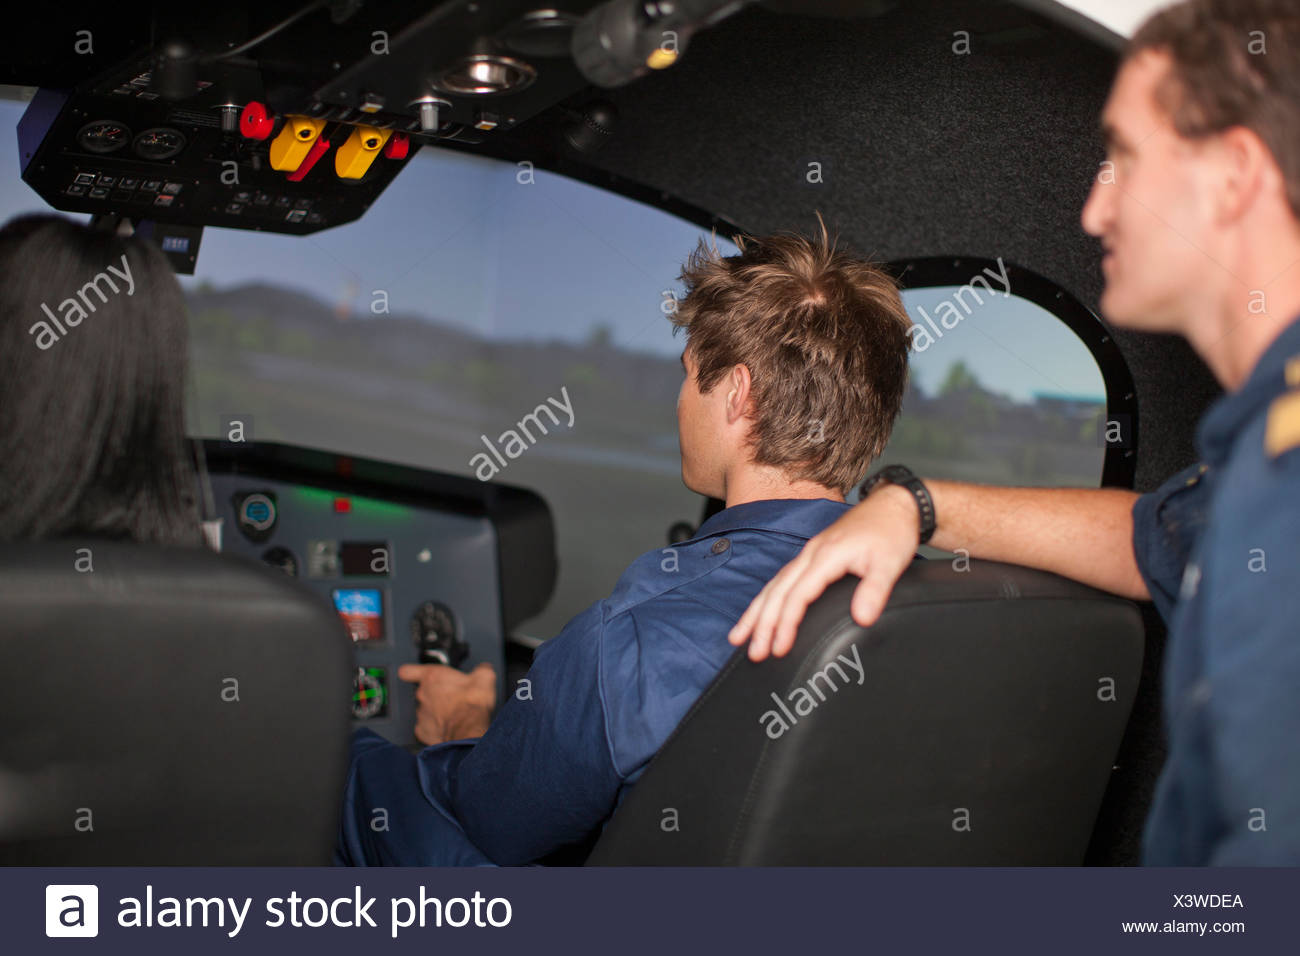 Student pilots learning to fly helicopter - Stock Image